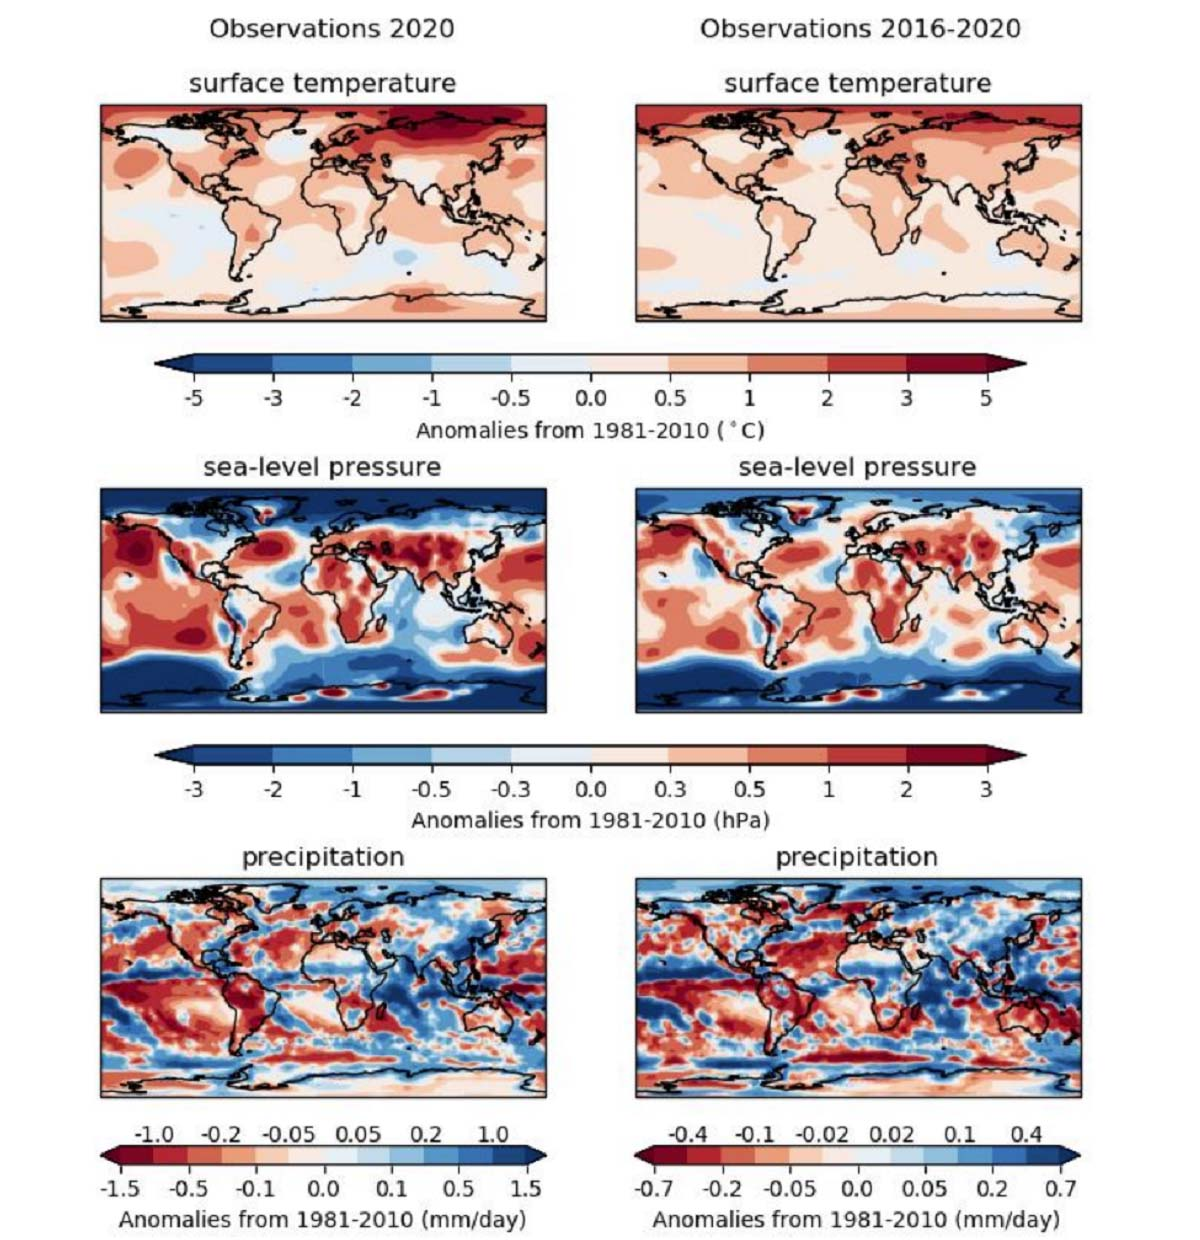 climate-change-tipping-point-global-temperature-increase-recent-years